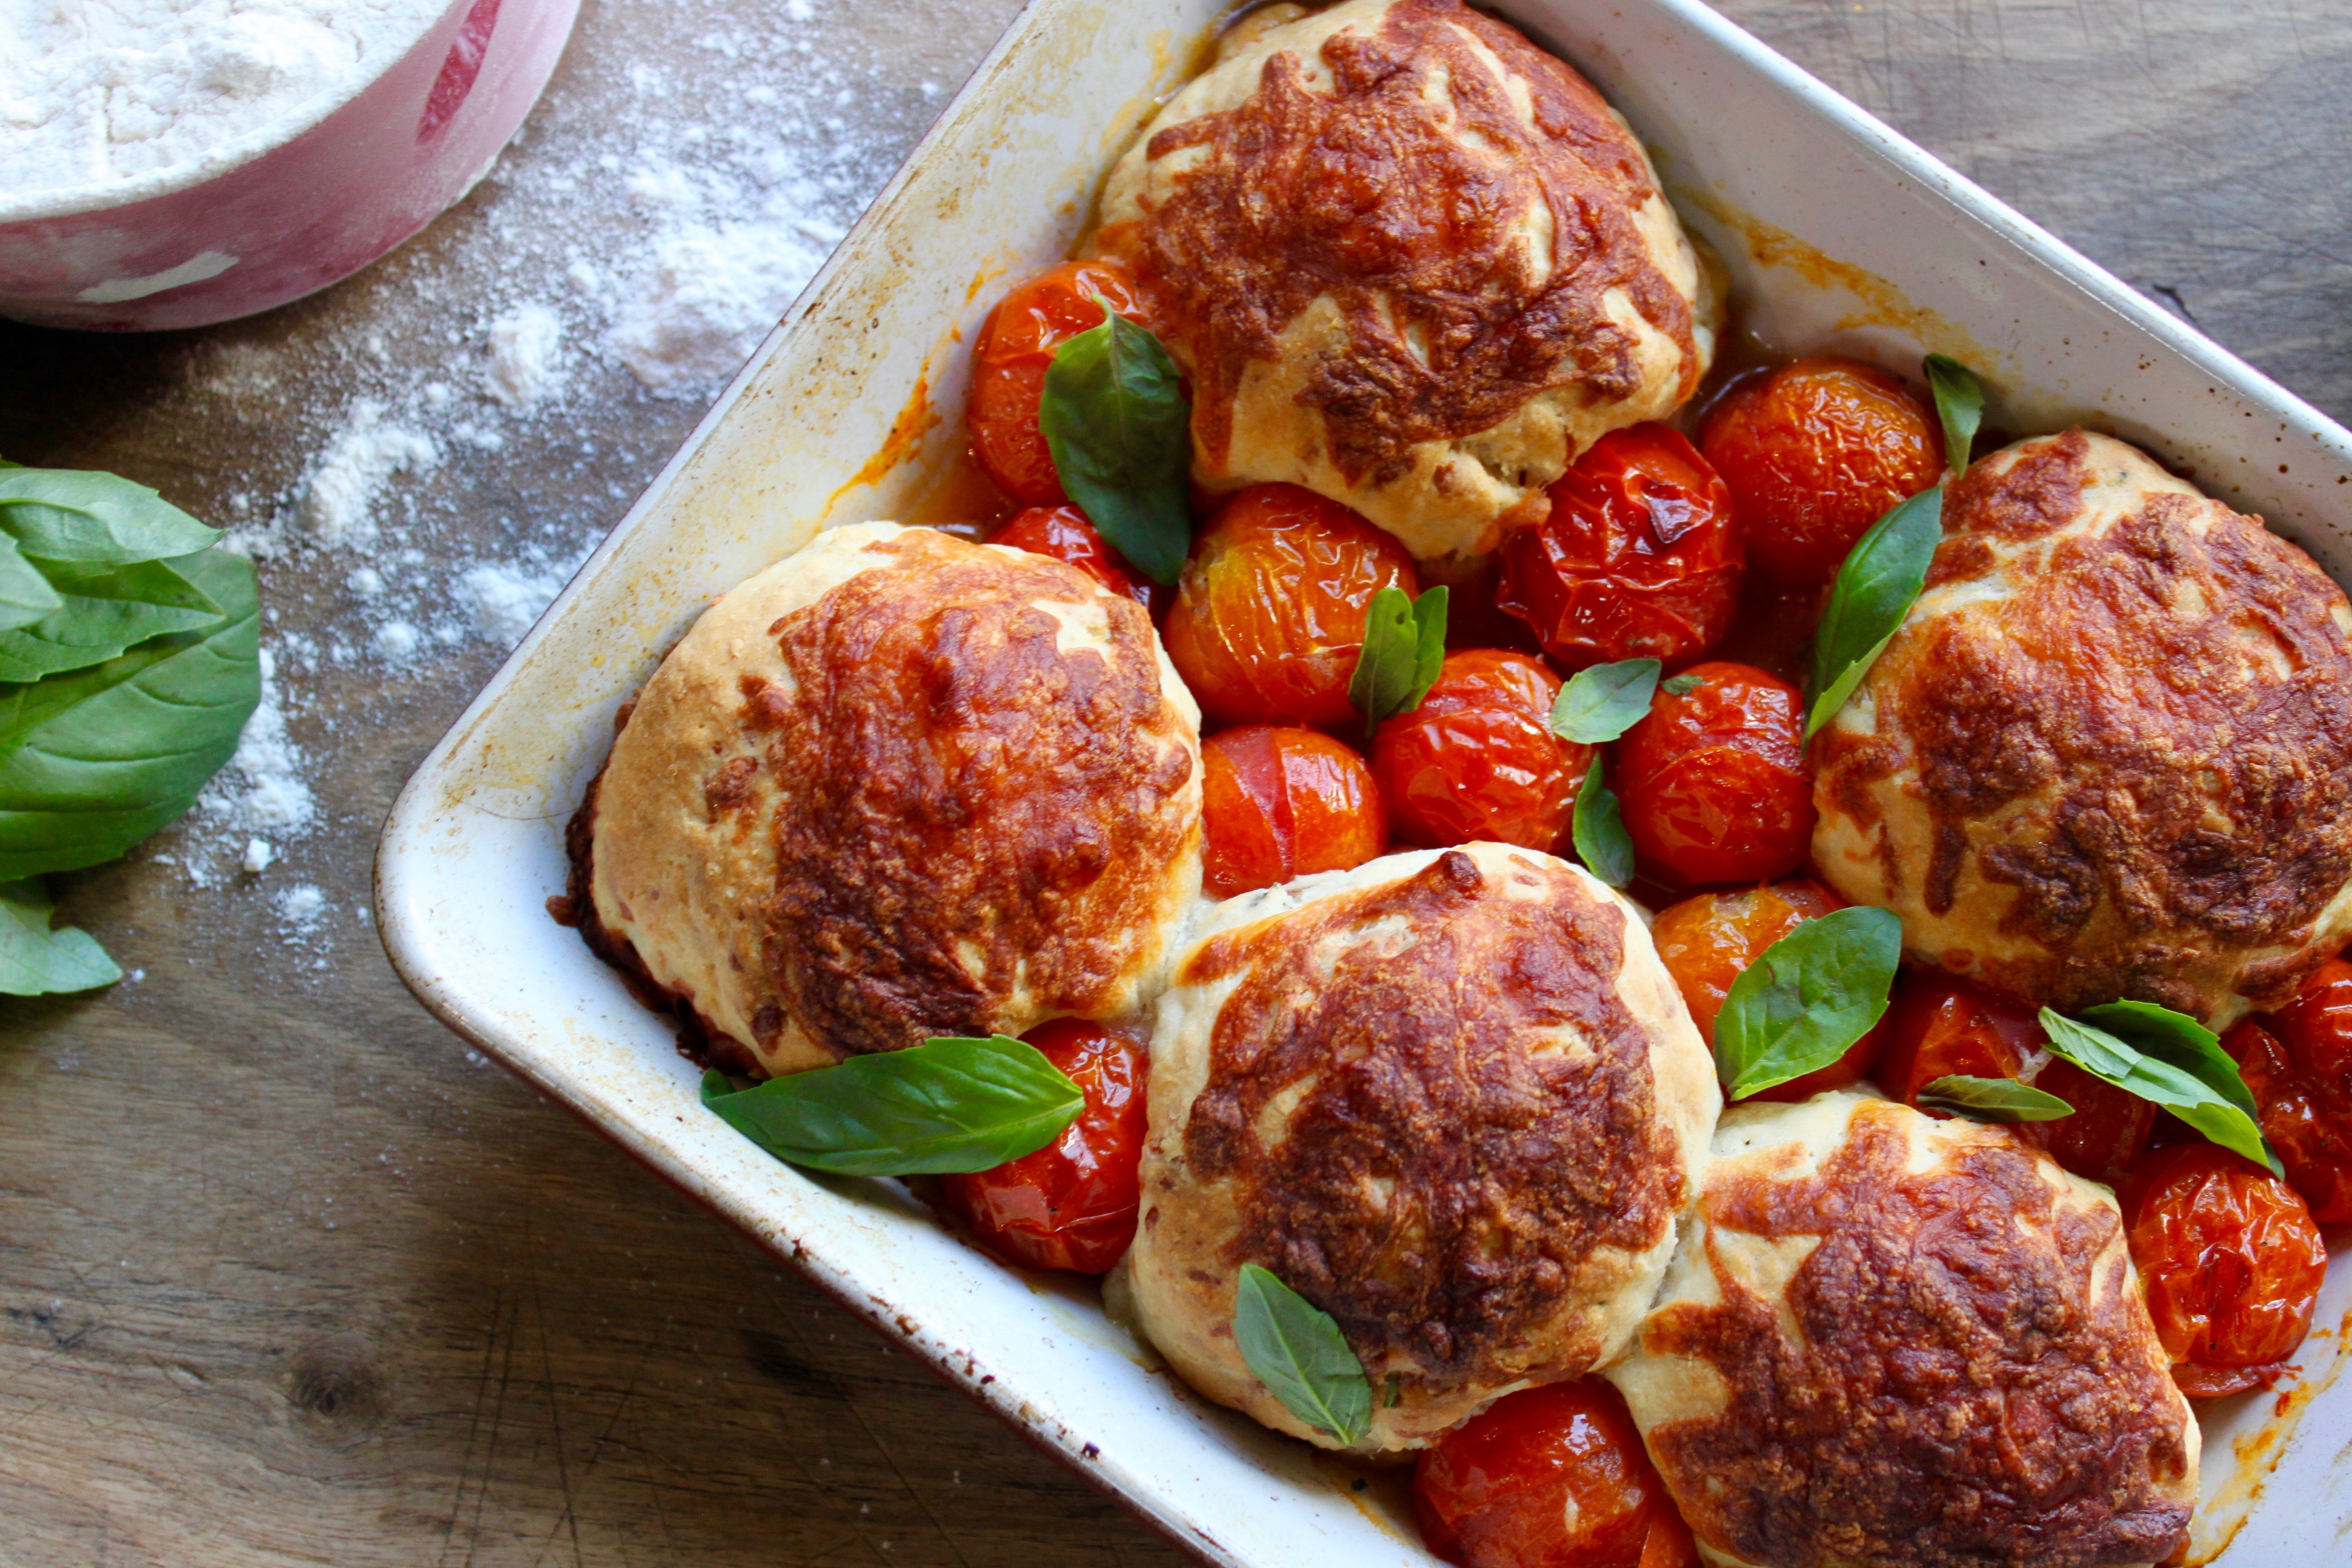 Wood Fired Cheese Scones With Cherry Tomatoes And Basil